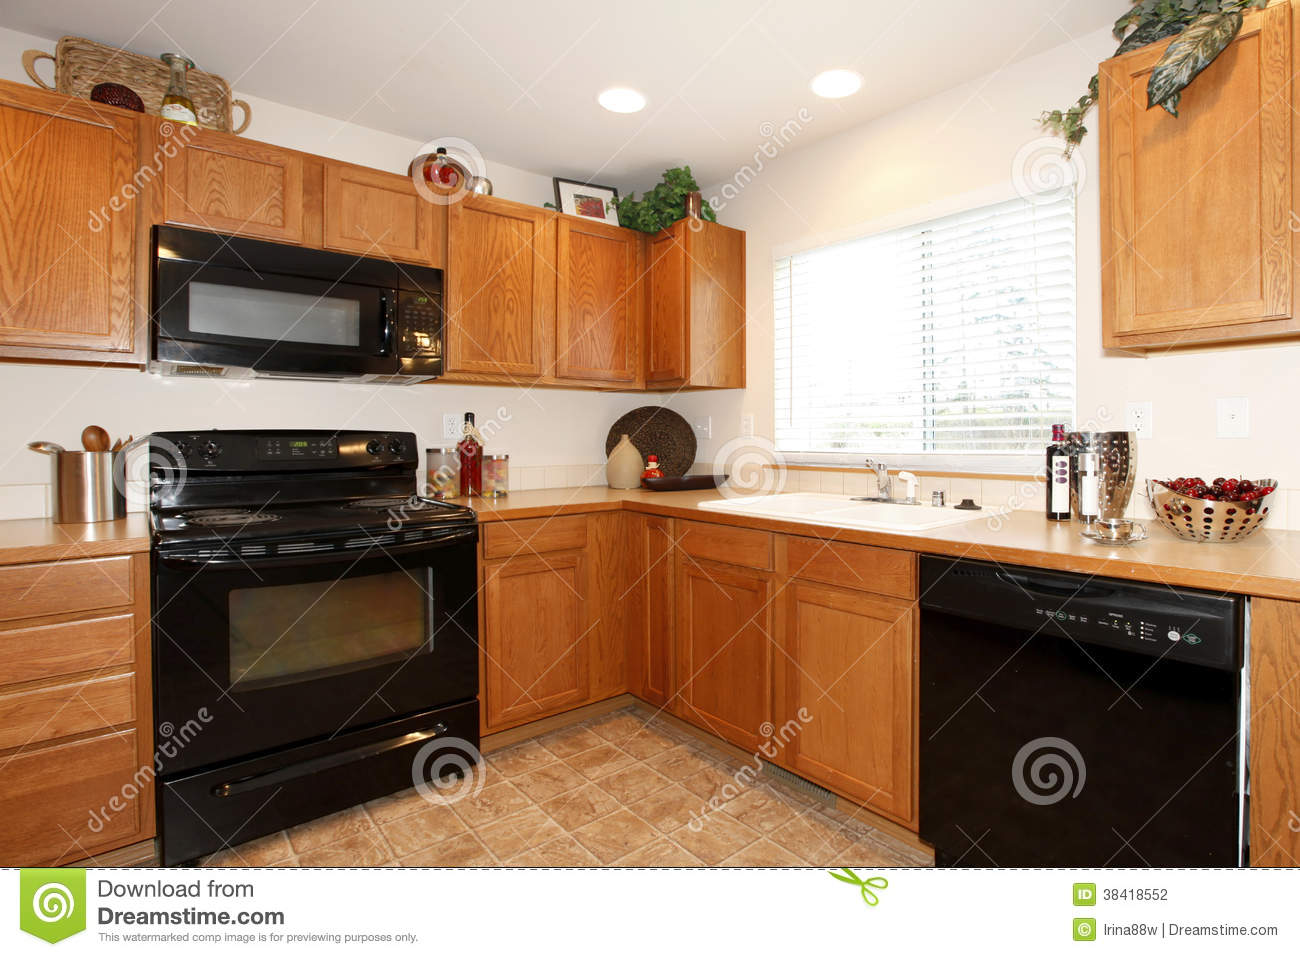 Brown kitchen cabinets with black appliances stock for Black and brown kitchen ideas